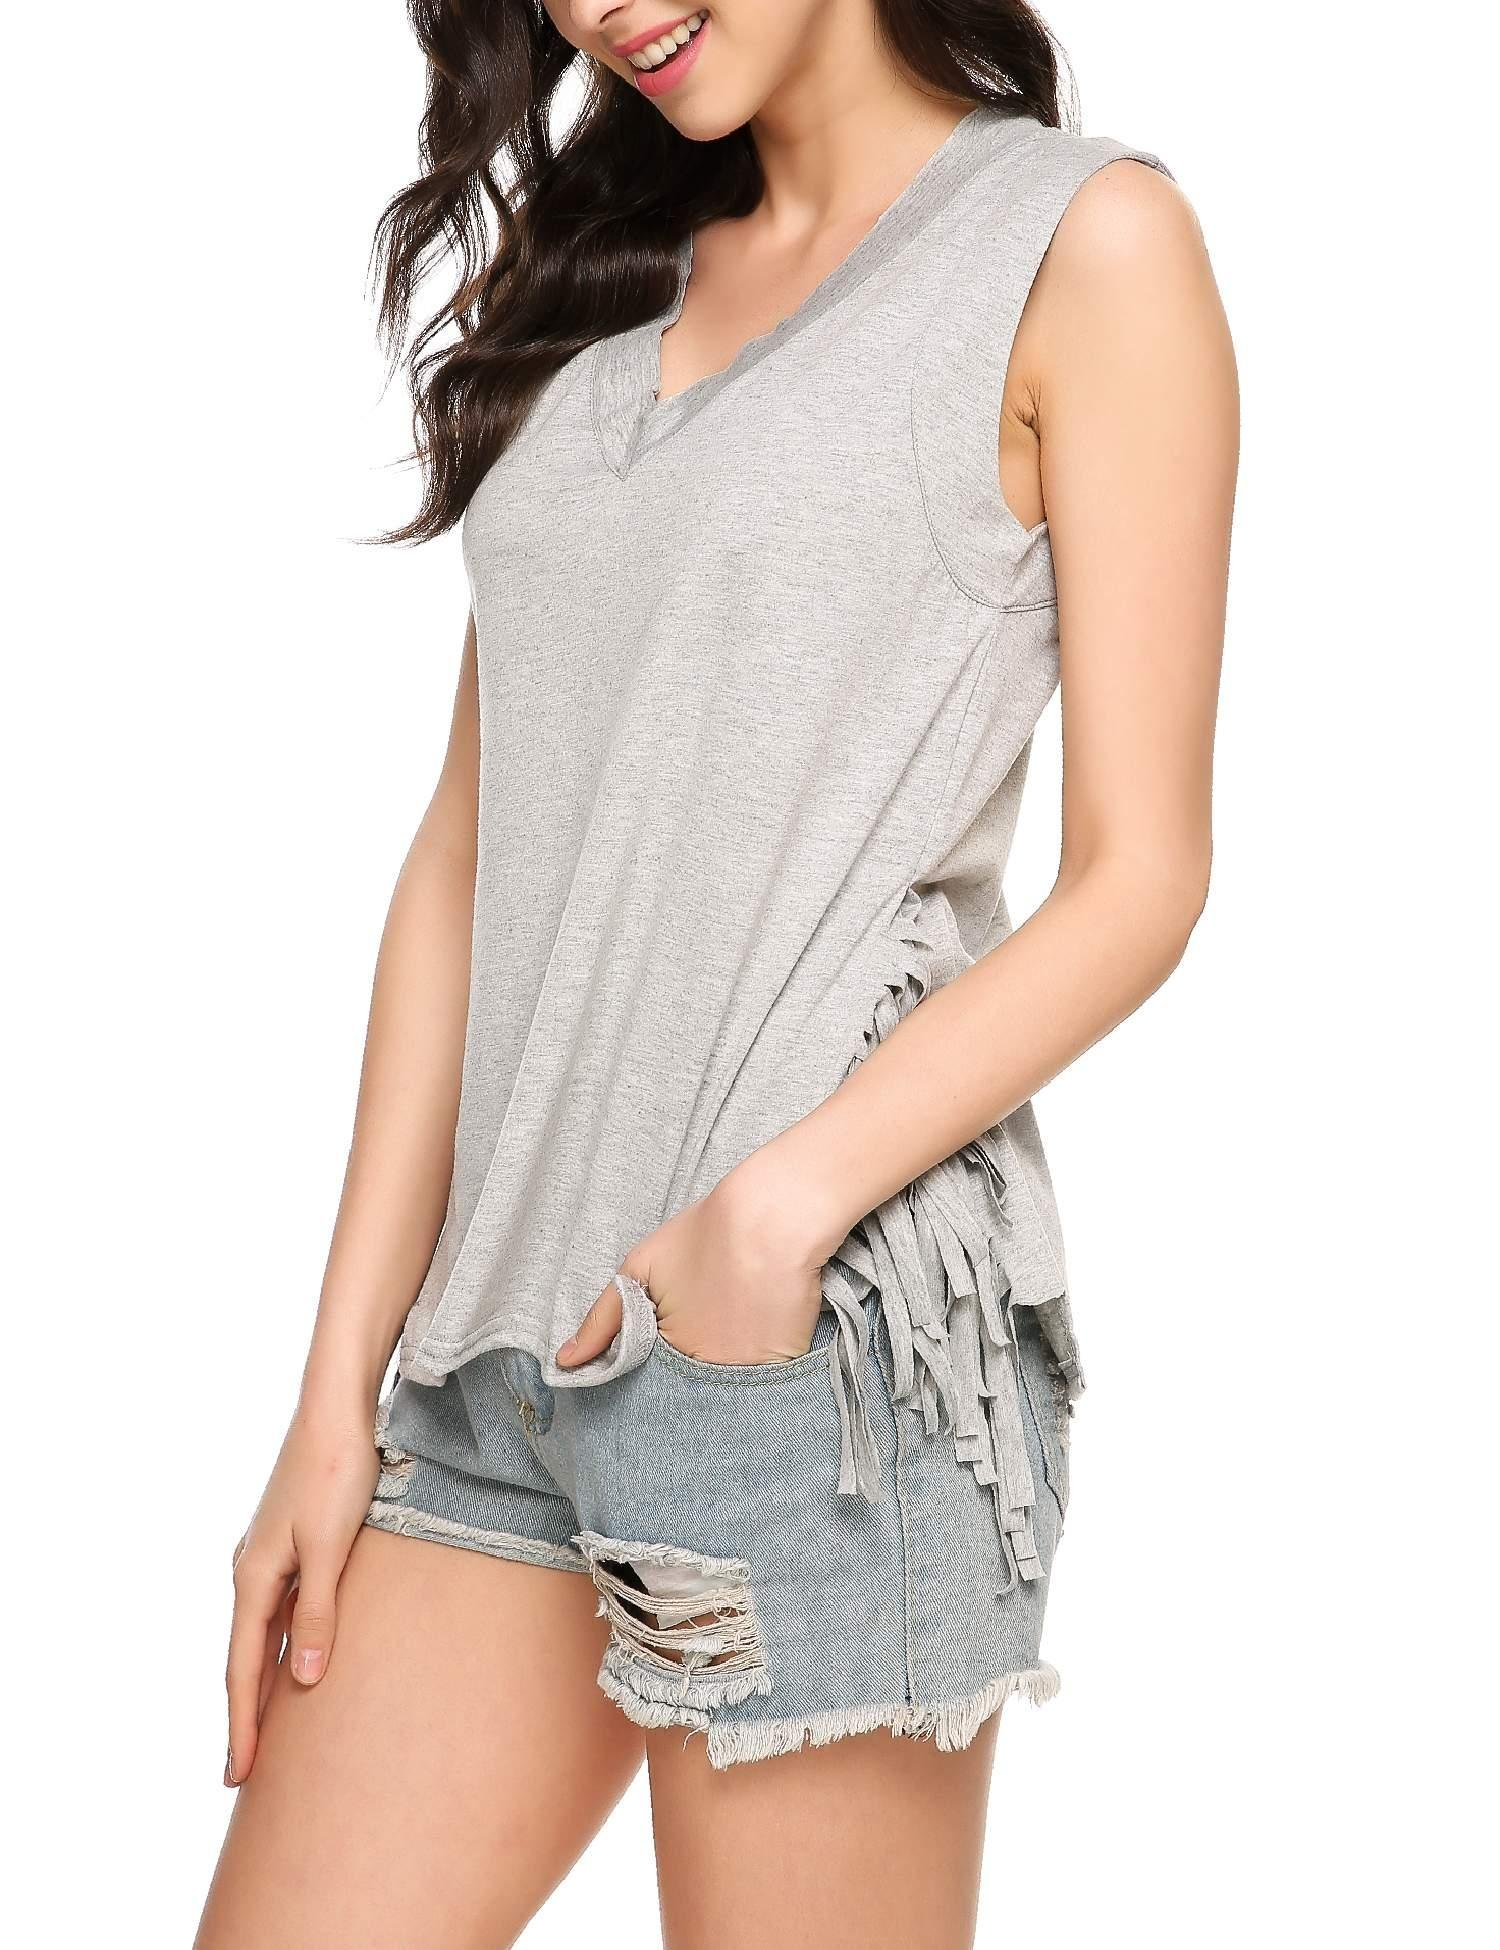 ELESOL Women V Neck Sleeveless Loose Fit Side Split Tassel Tank Top Gray XXL